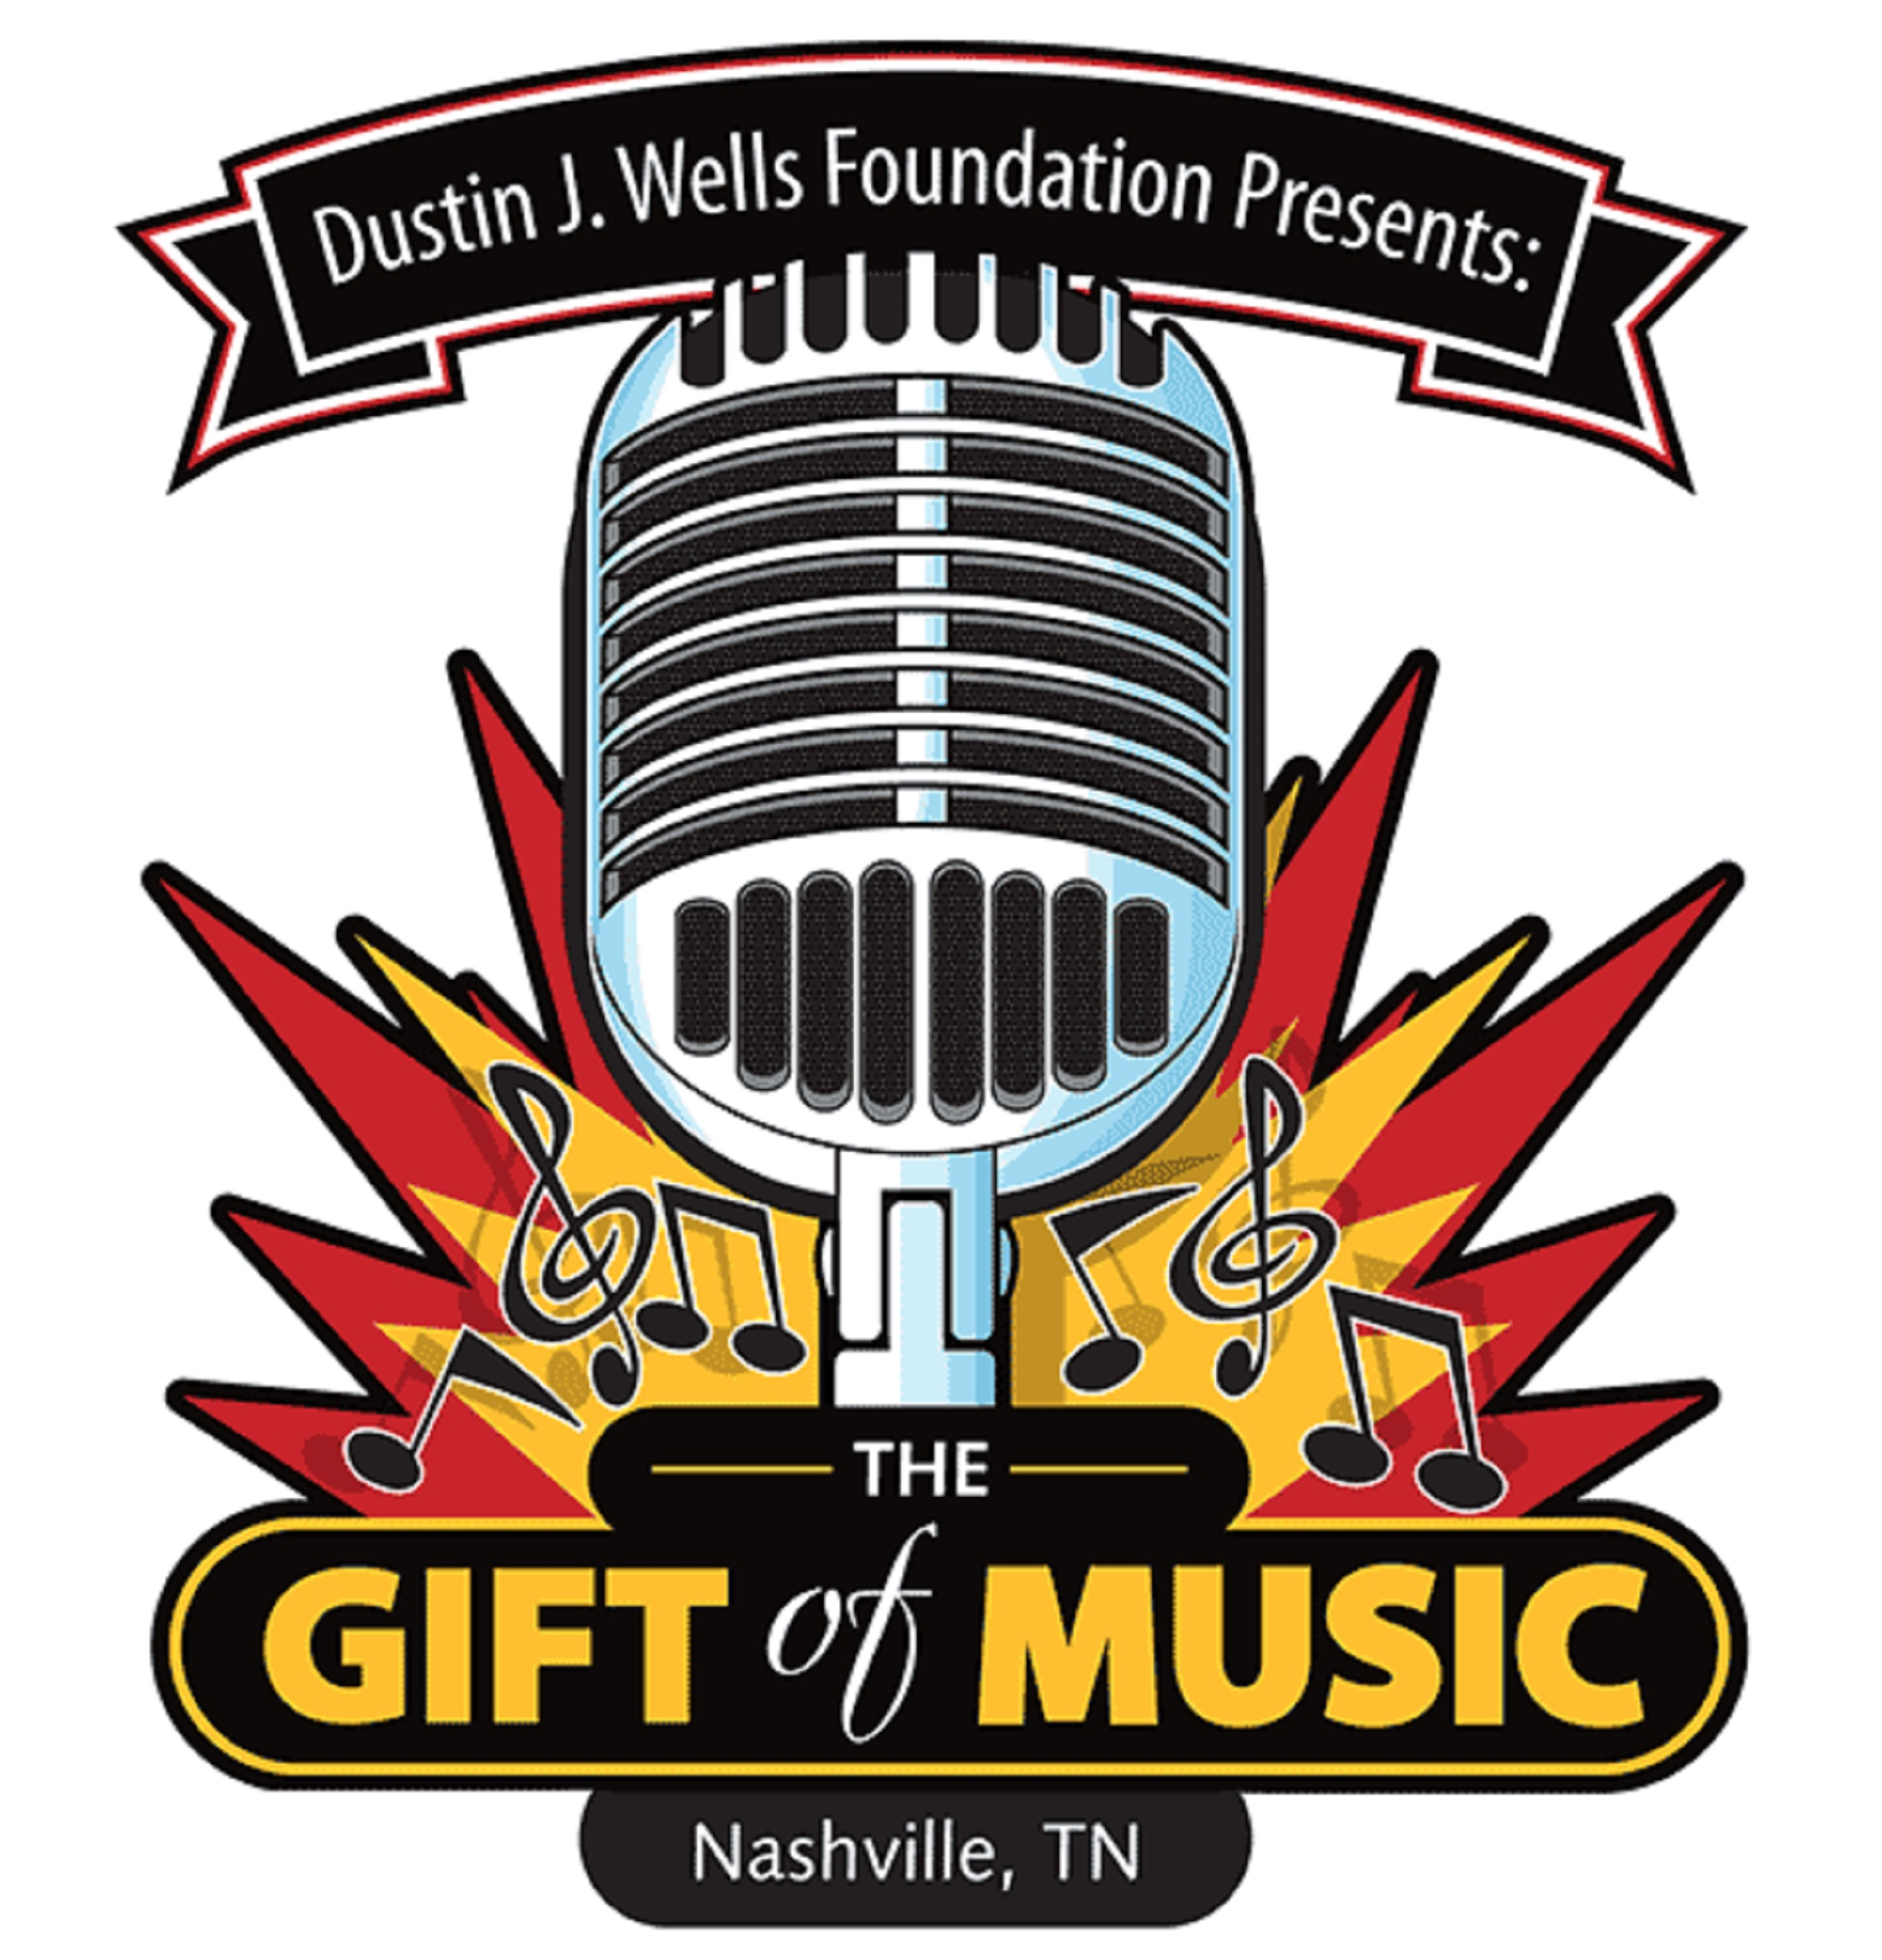 Dolly Parton, Lee Greenwood, Lonestar, Collin Raye And More To Perform For The Gift of Music Concert On January 30 At The Historic Ryman Auditorium